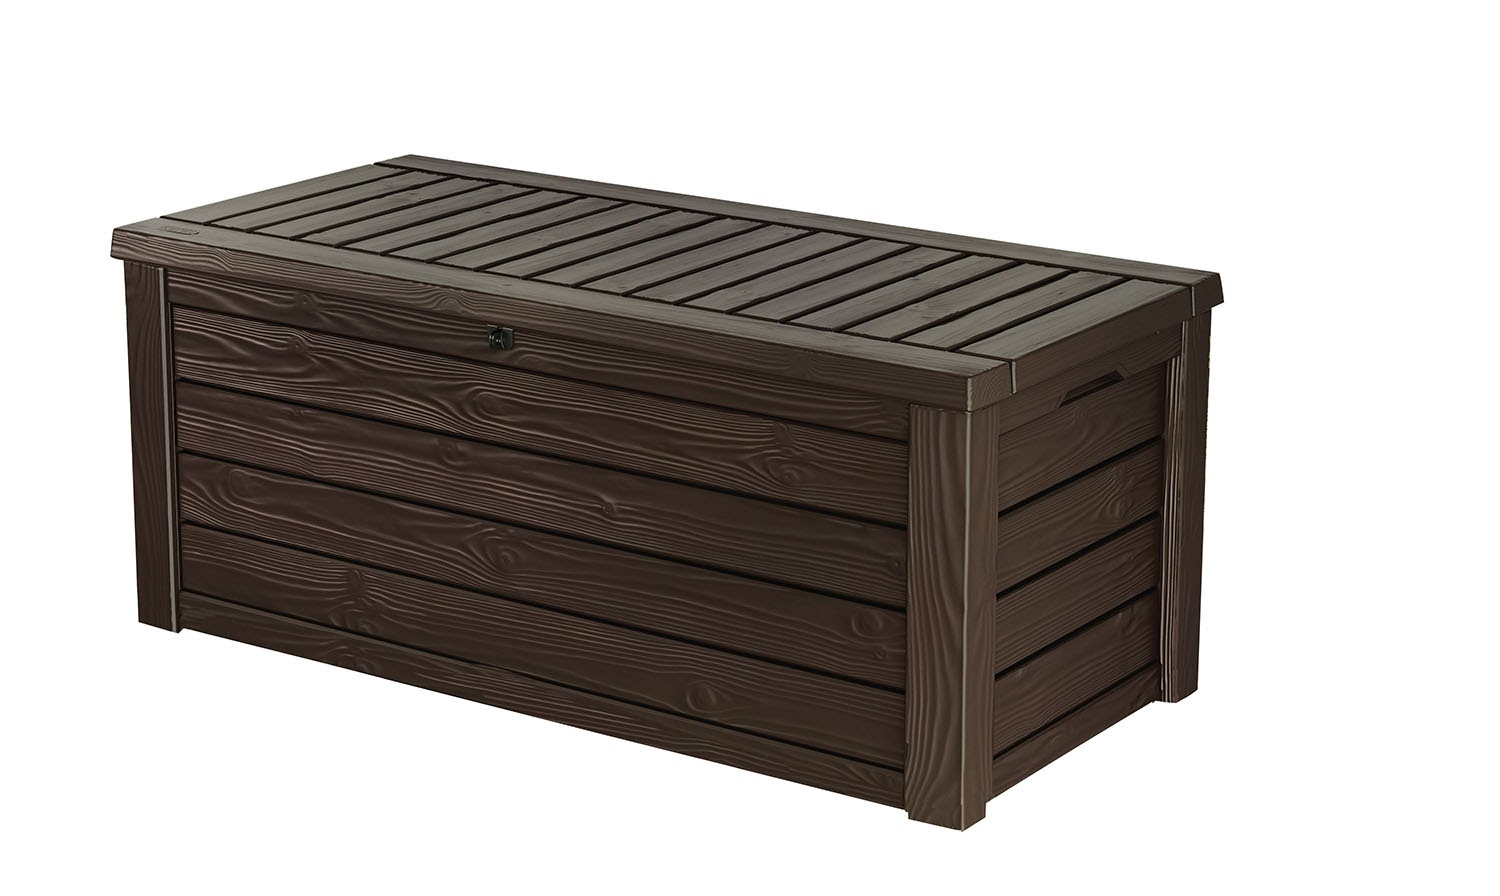 Keter Westwood 150 Gallon Outdoor Deck Box, Resin Patio Storage Bench Box by Keter